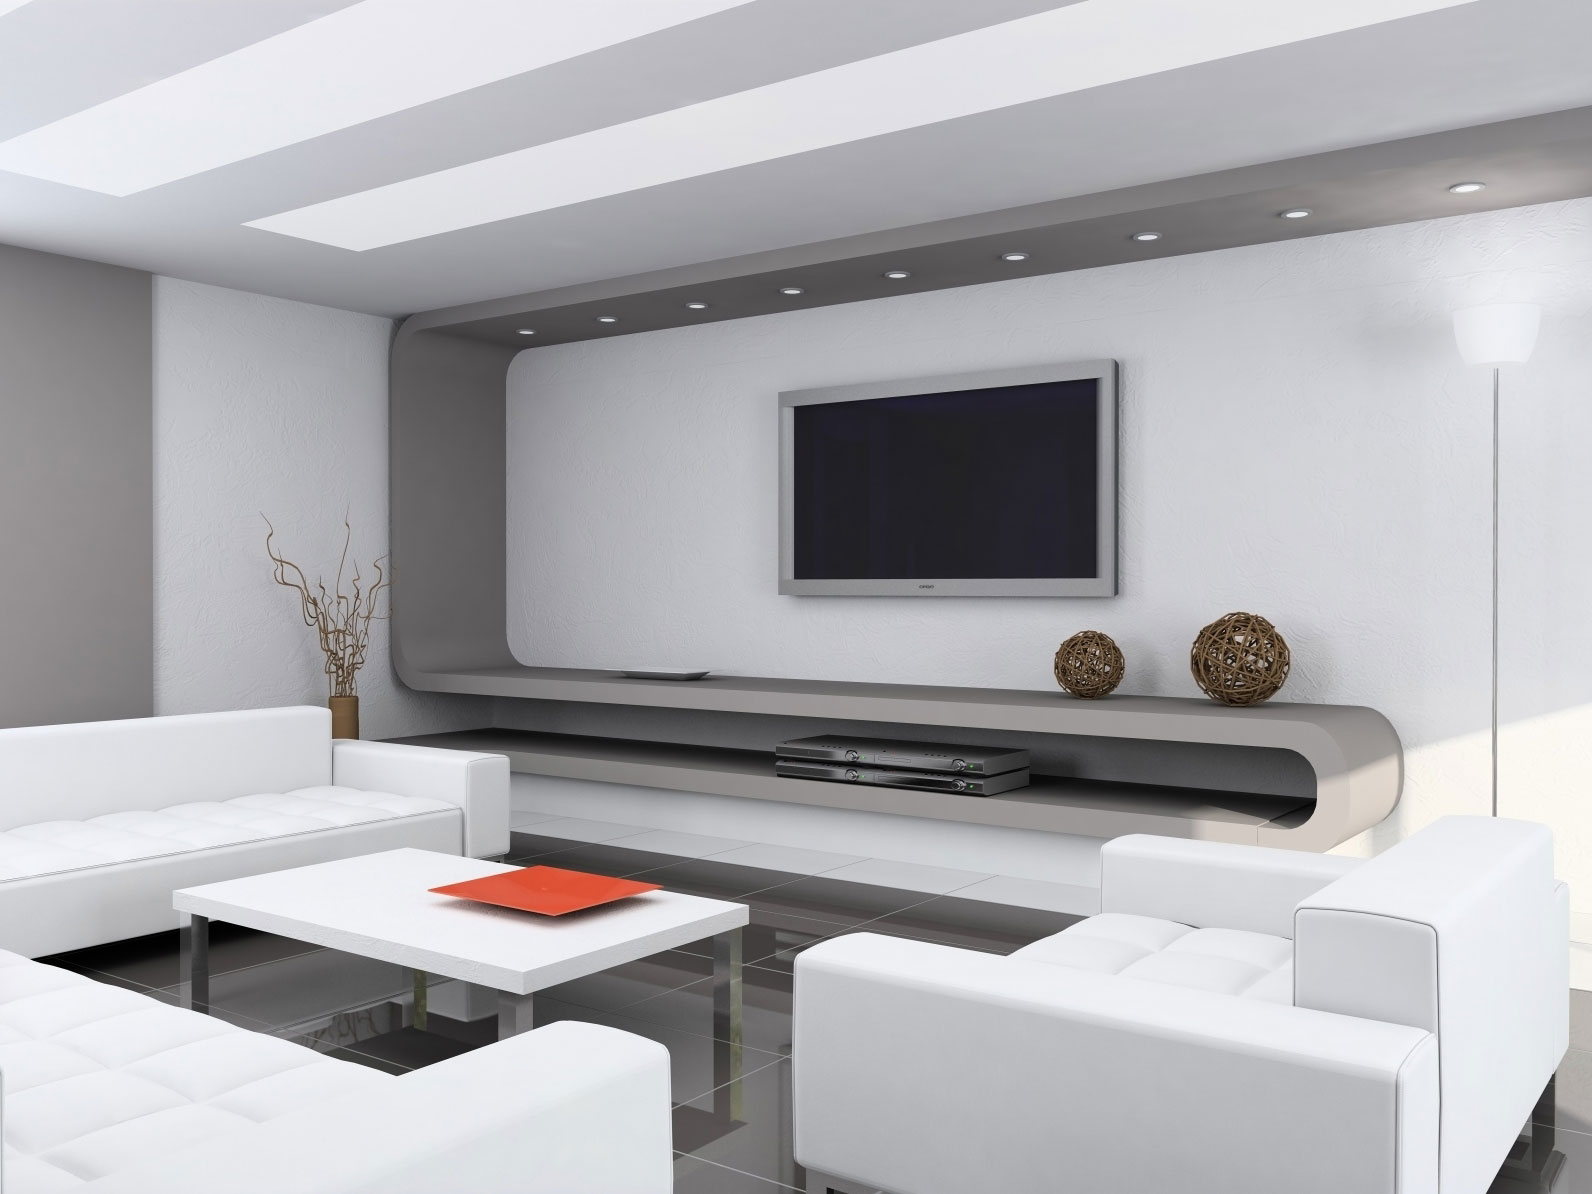 Home design with minimalist interior design Minimalist design